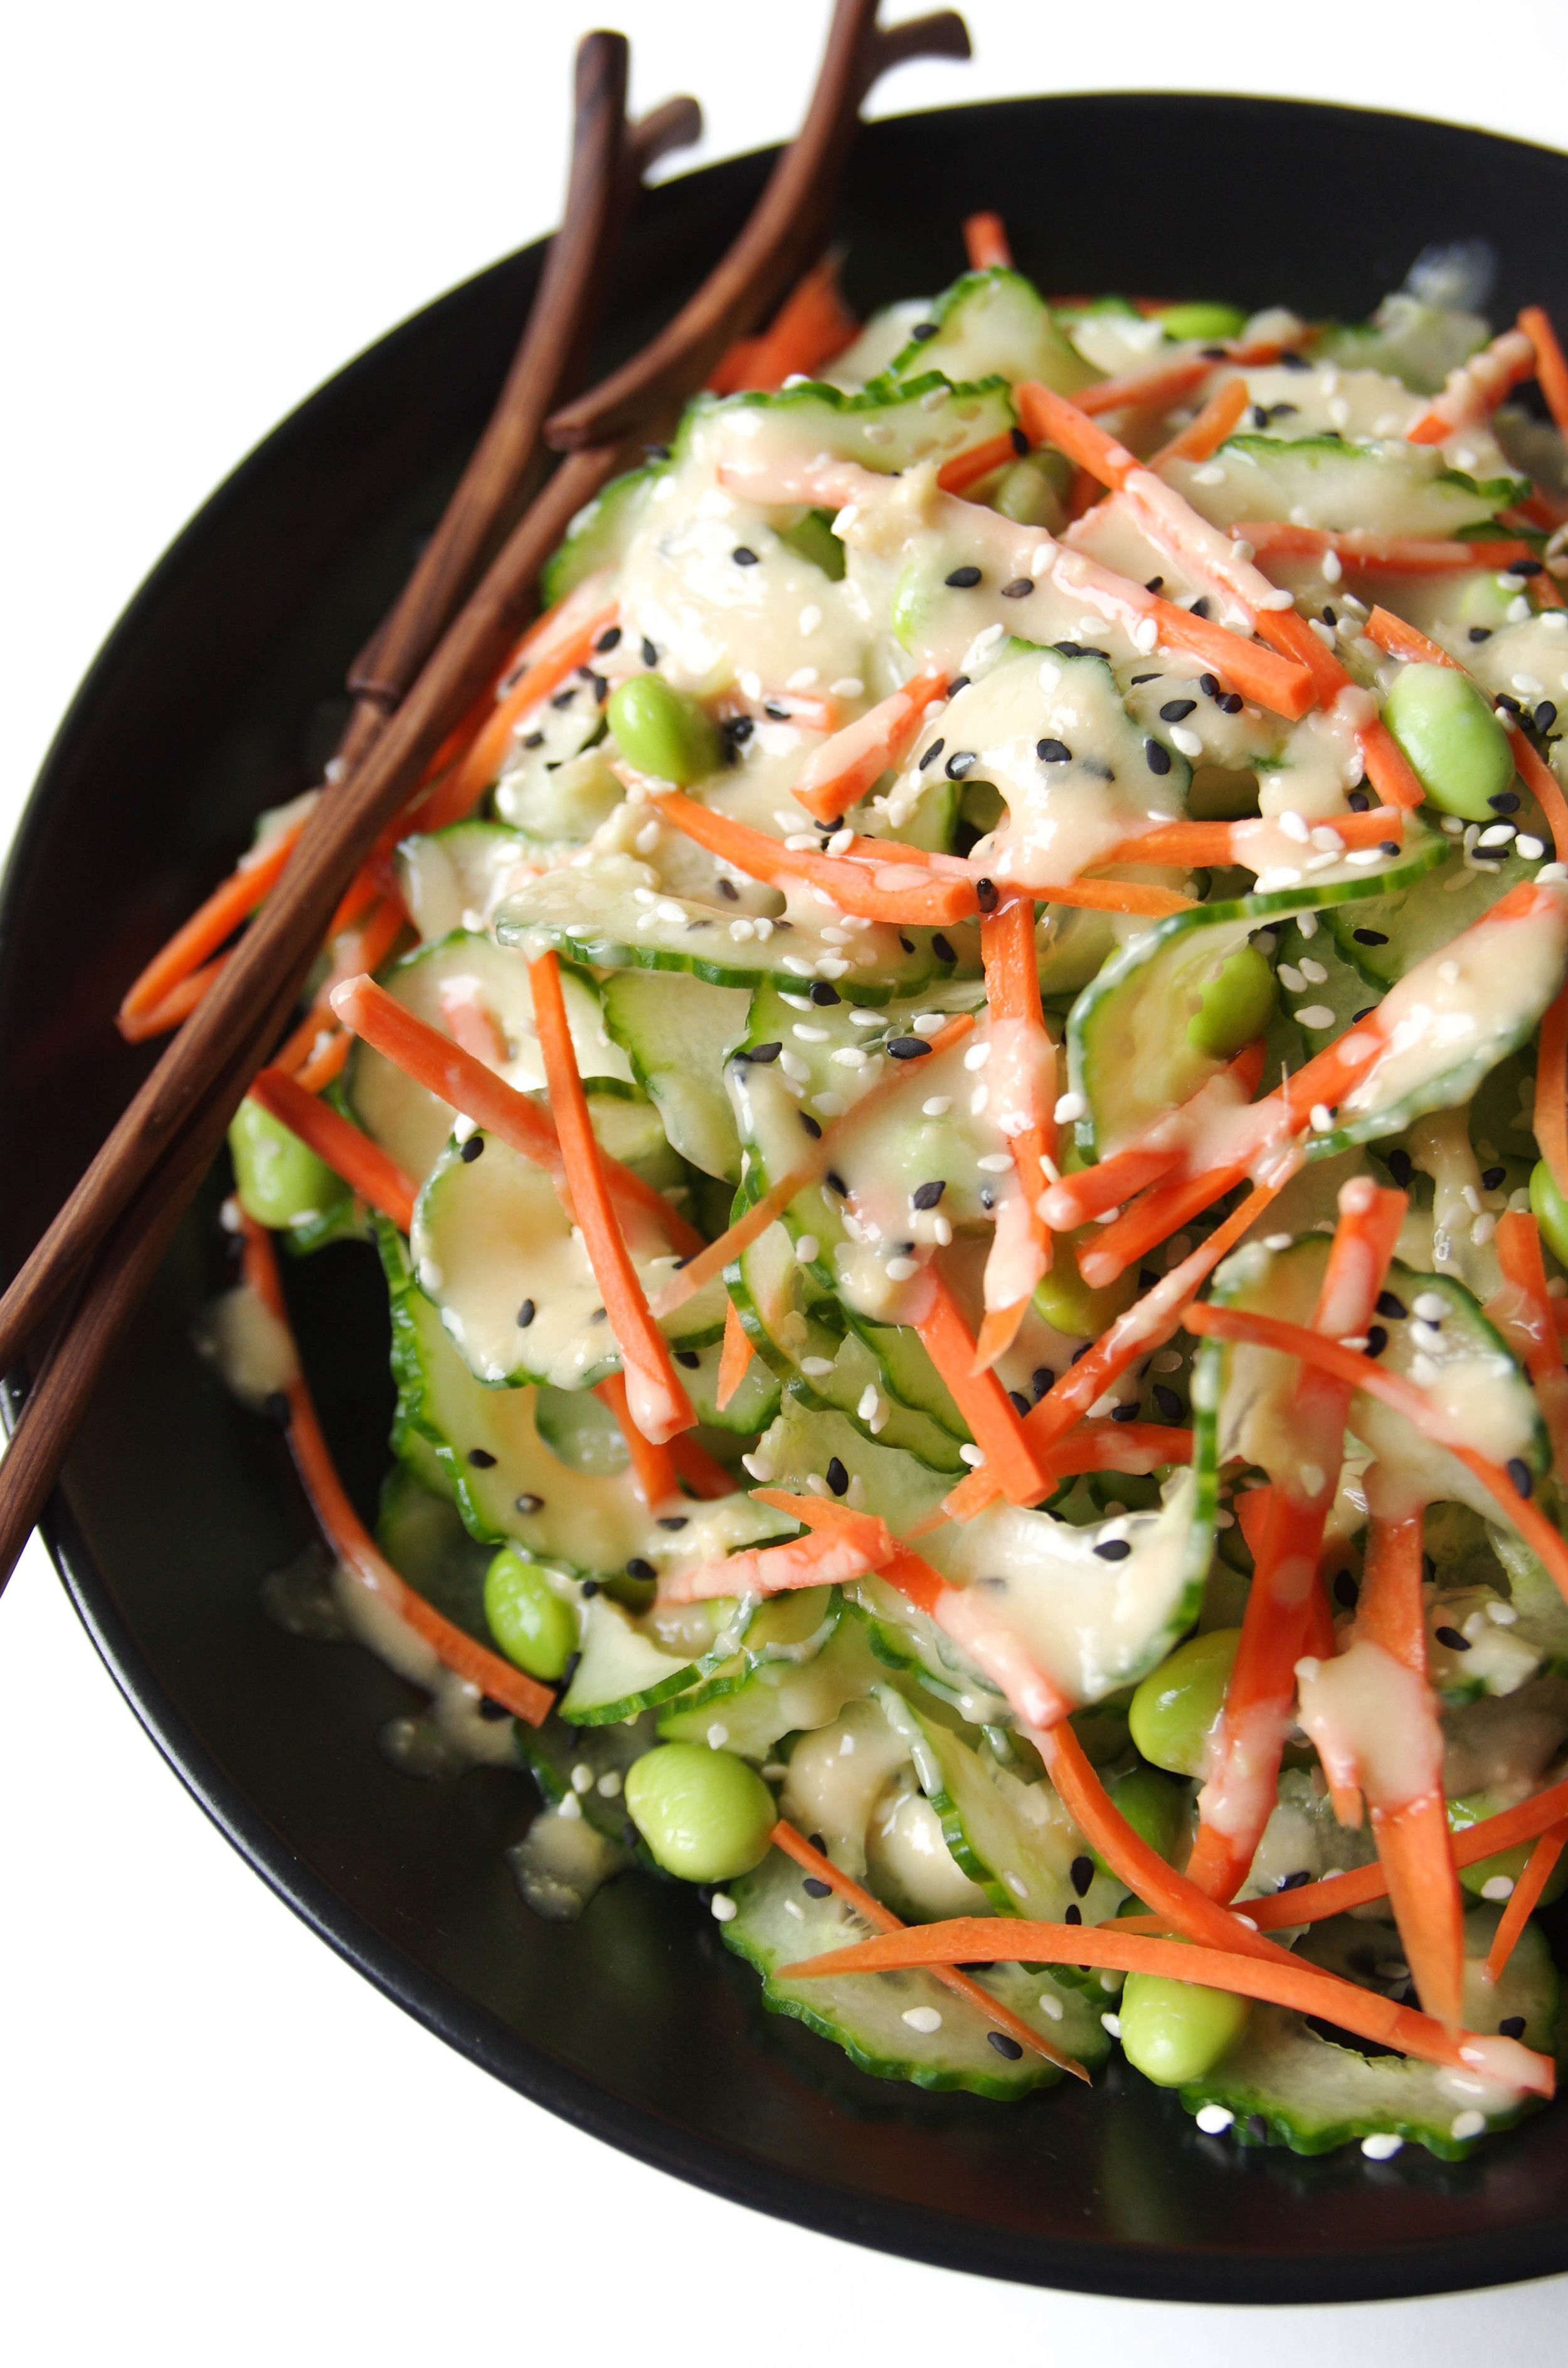 Cucumber Salad Dressing with Miso Salad Dressing